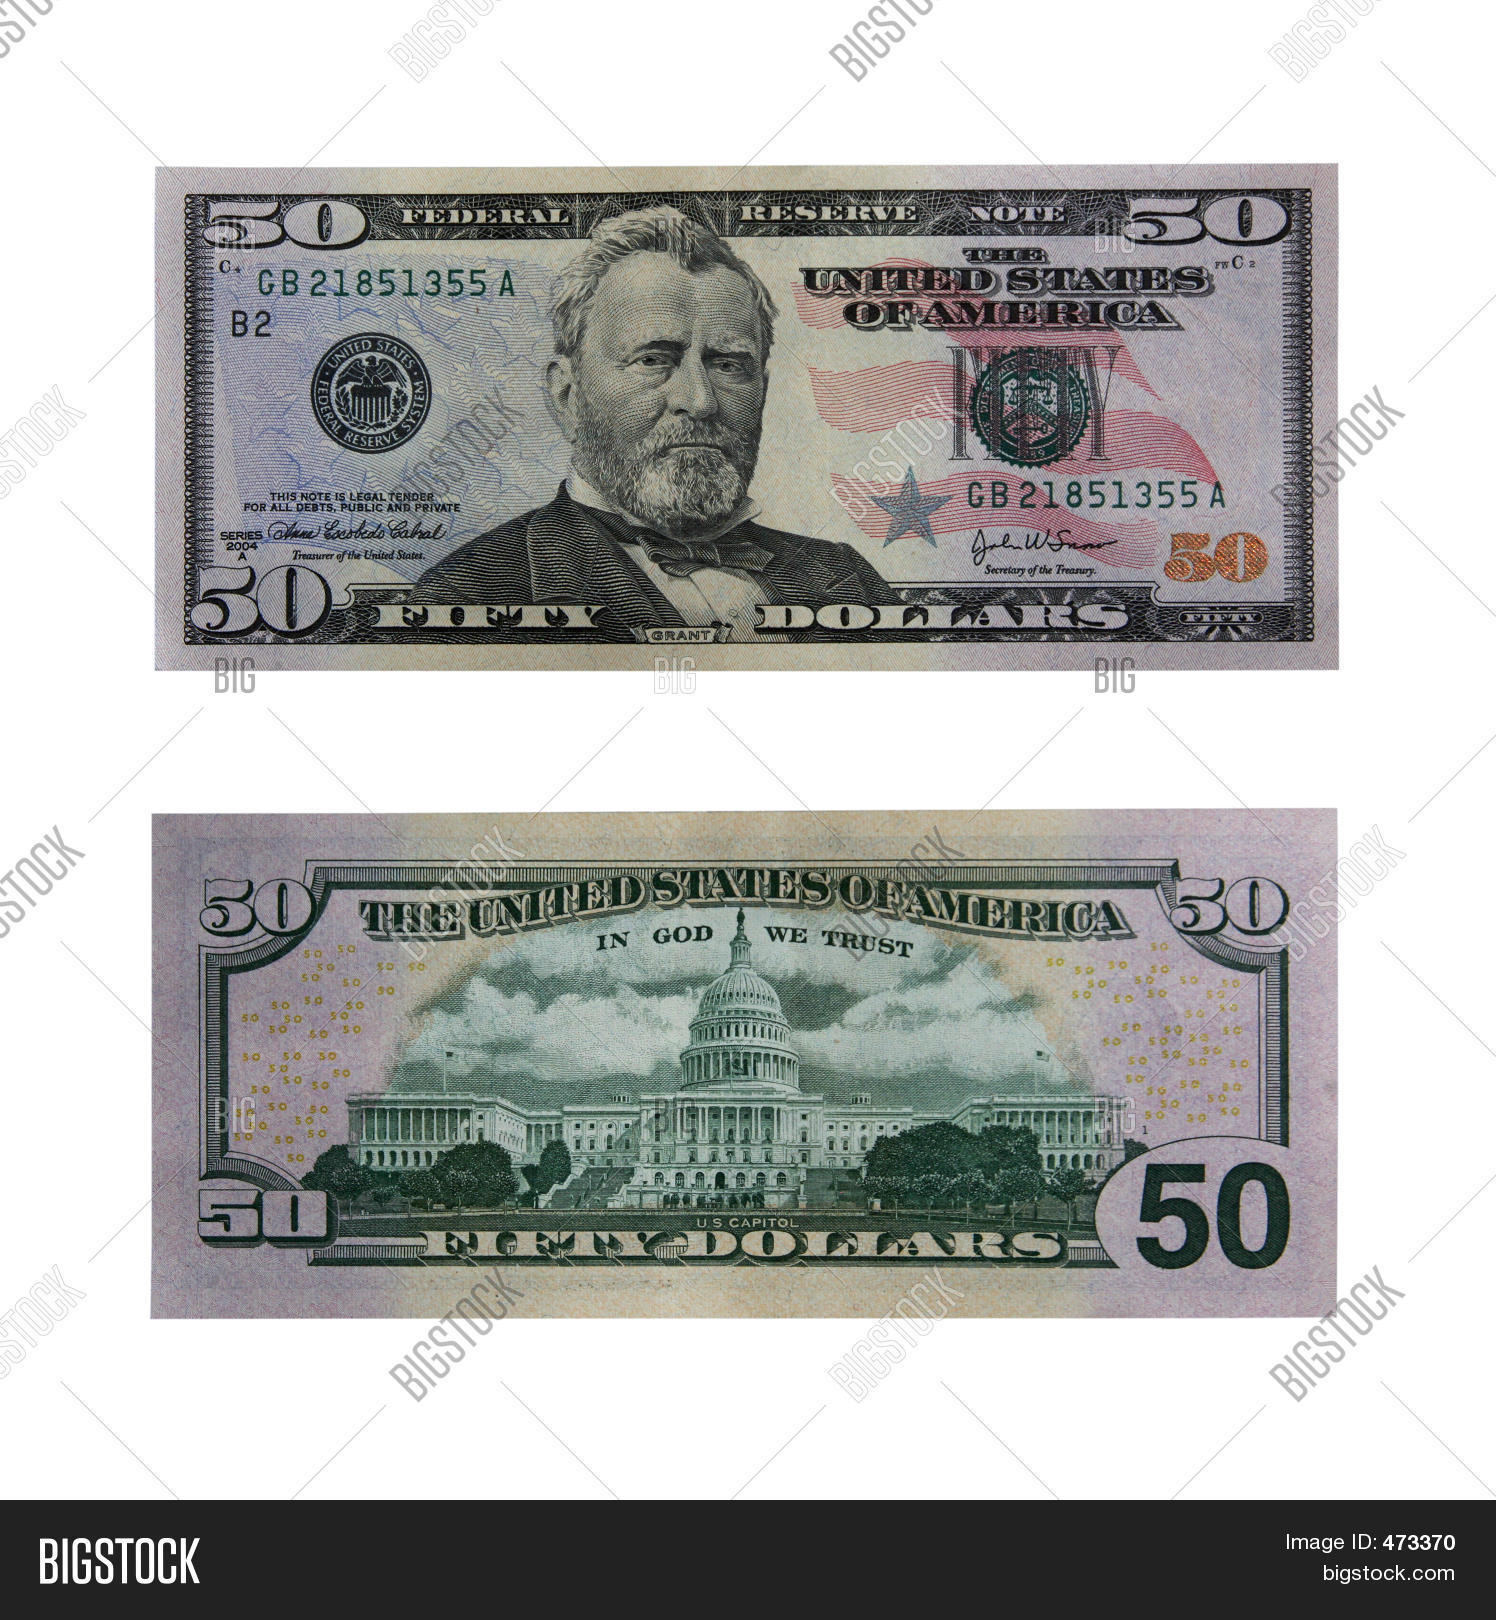 50 dollar bill images illustrations vectors free bigstock